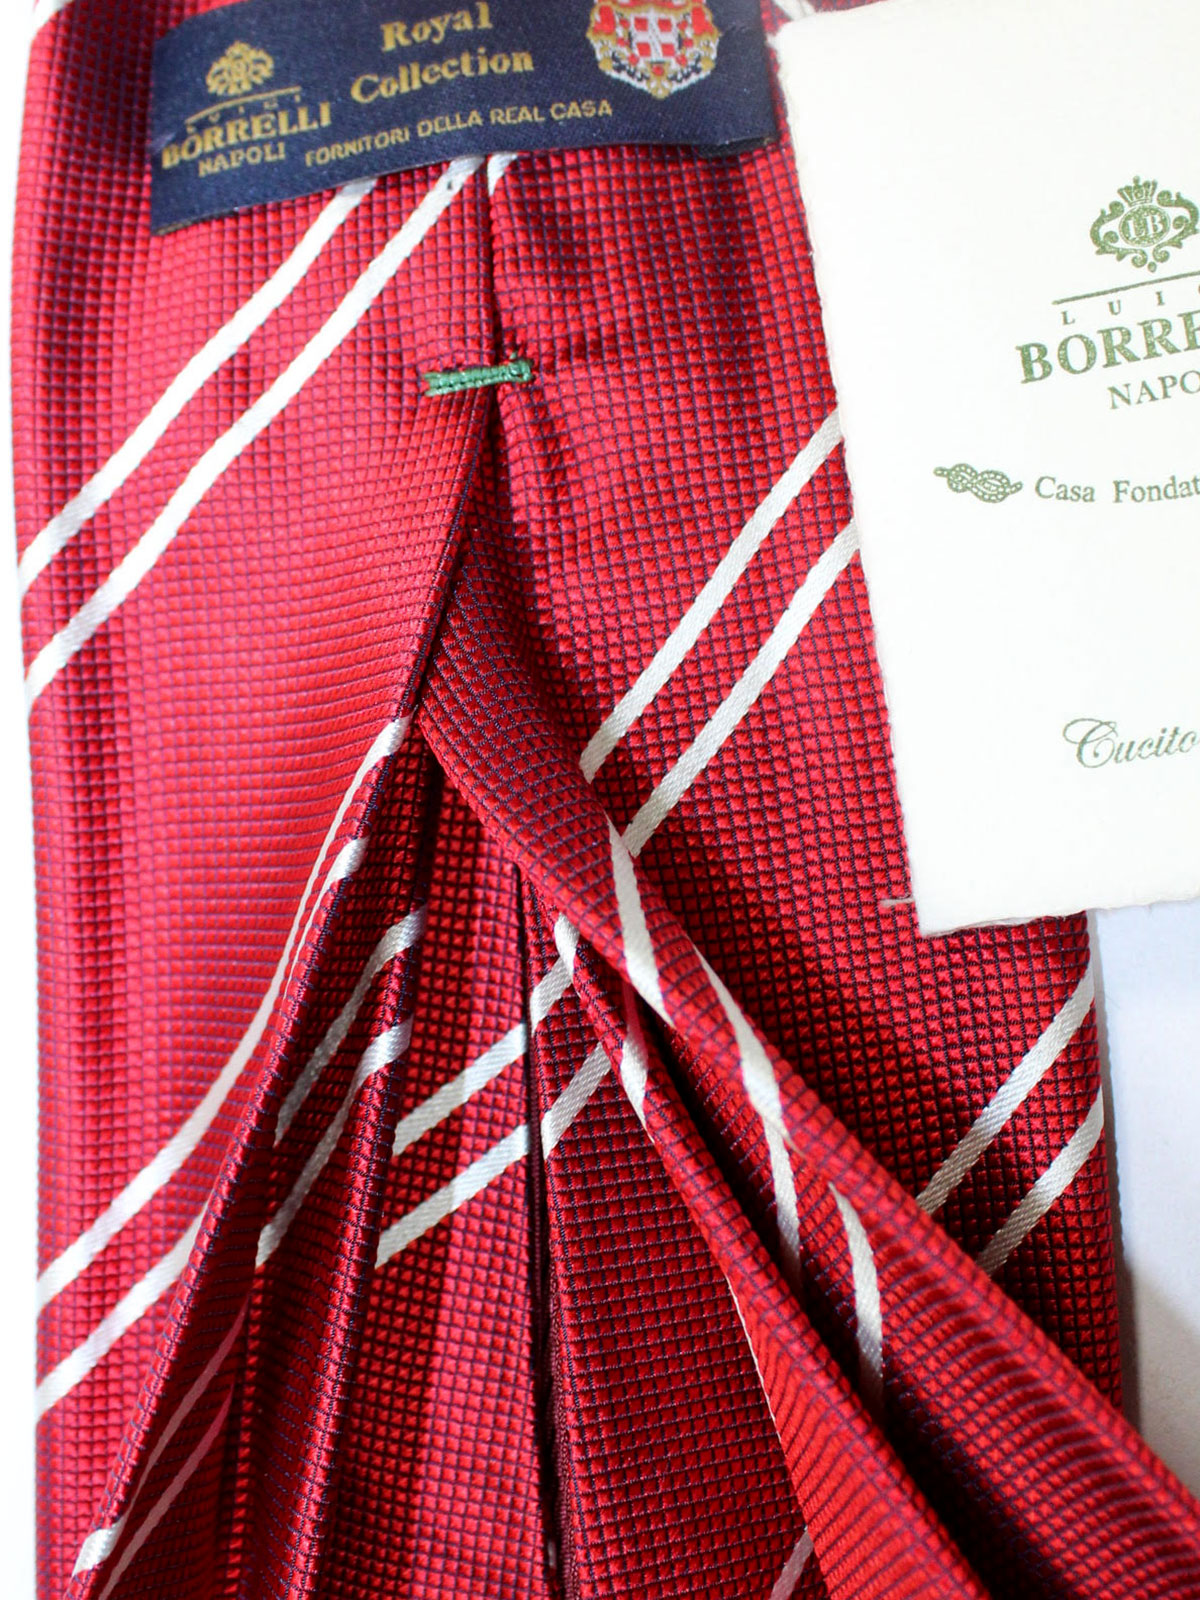 Luigi Borrelli 11 Fold Tie Dark Red White Stripes ROYAL COLLECTION - Elevenfold Necktie